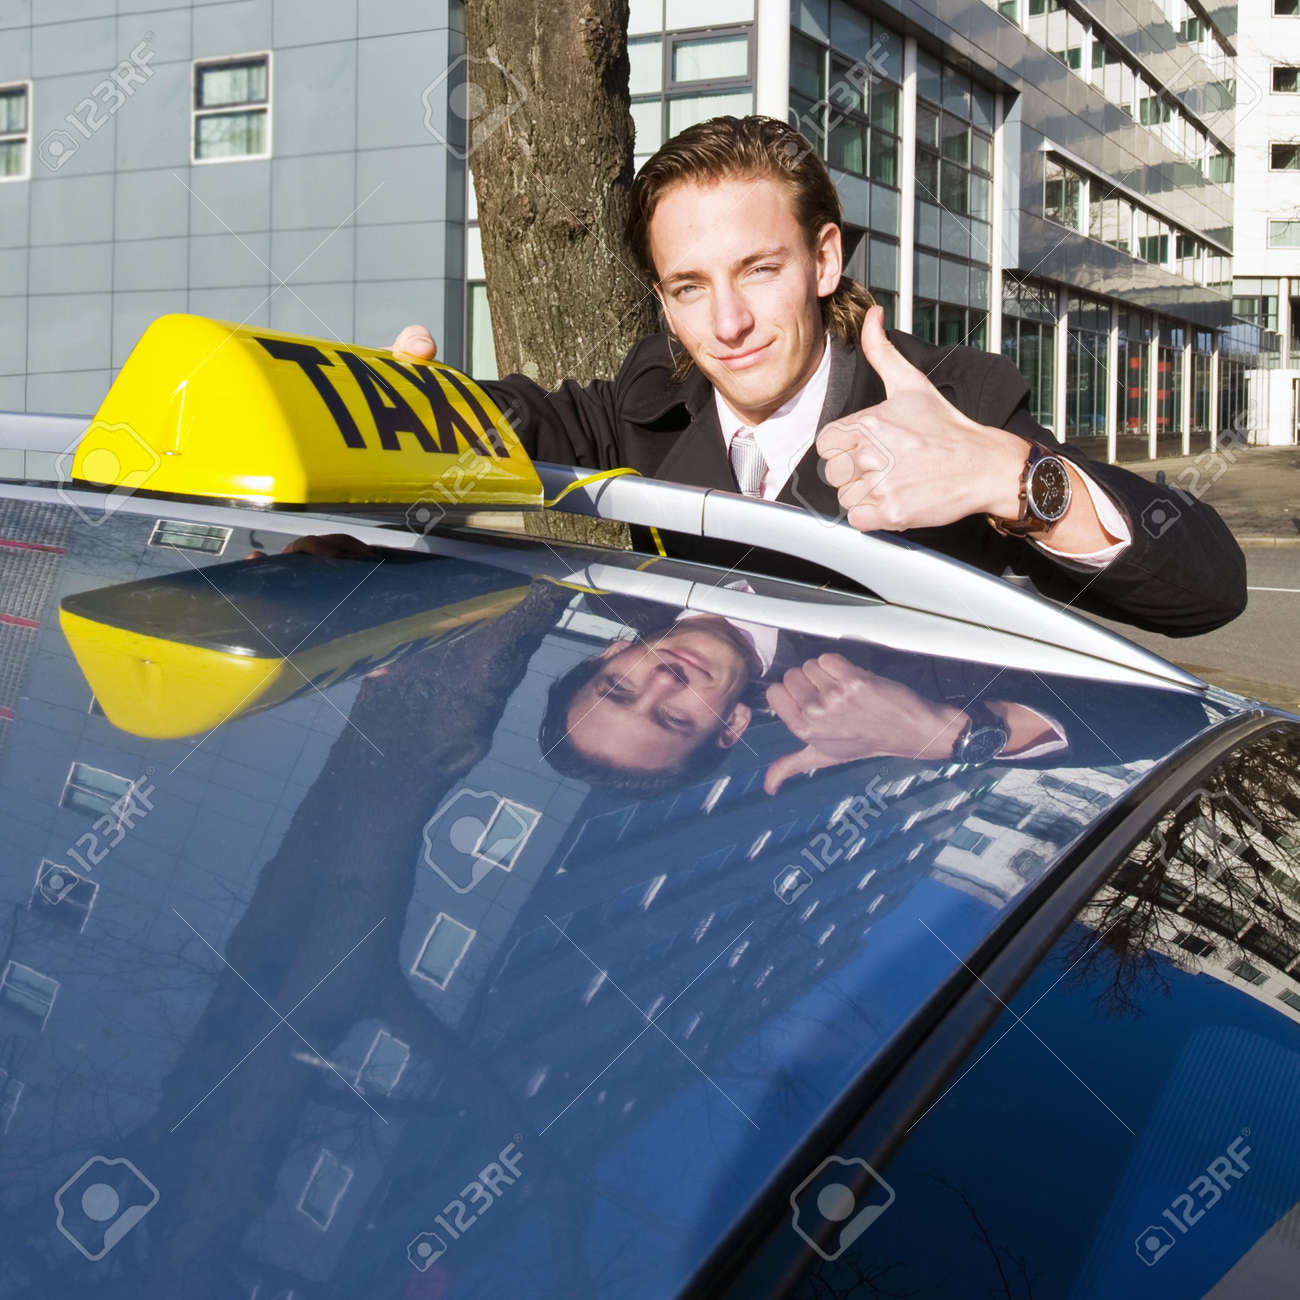 A smiling taxi driver giving a thumbs up while placing his taxi sign on the roof of his car Stock Photo - 6494276